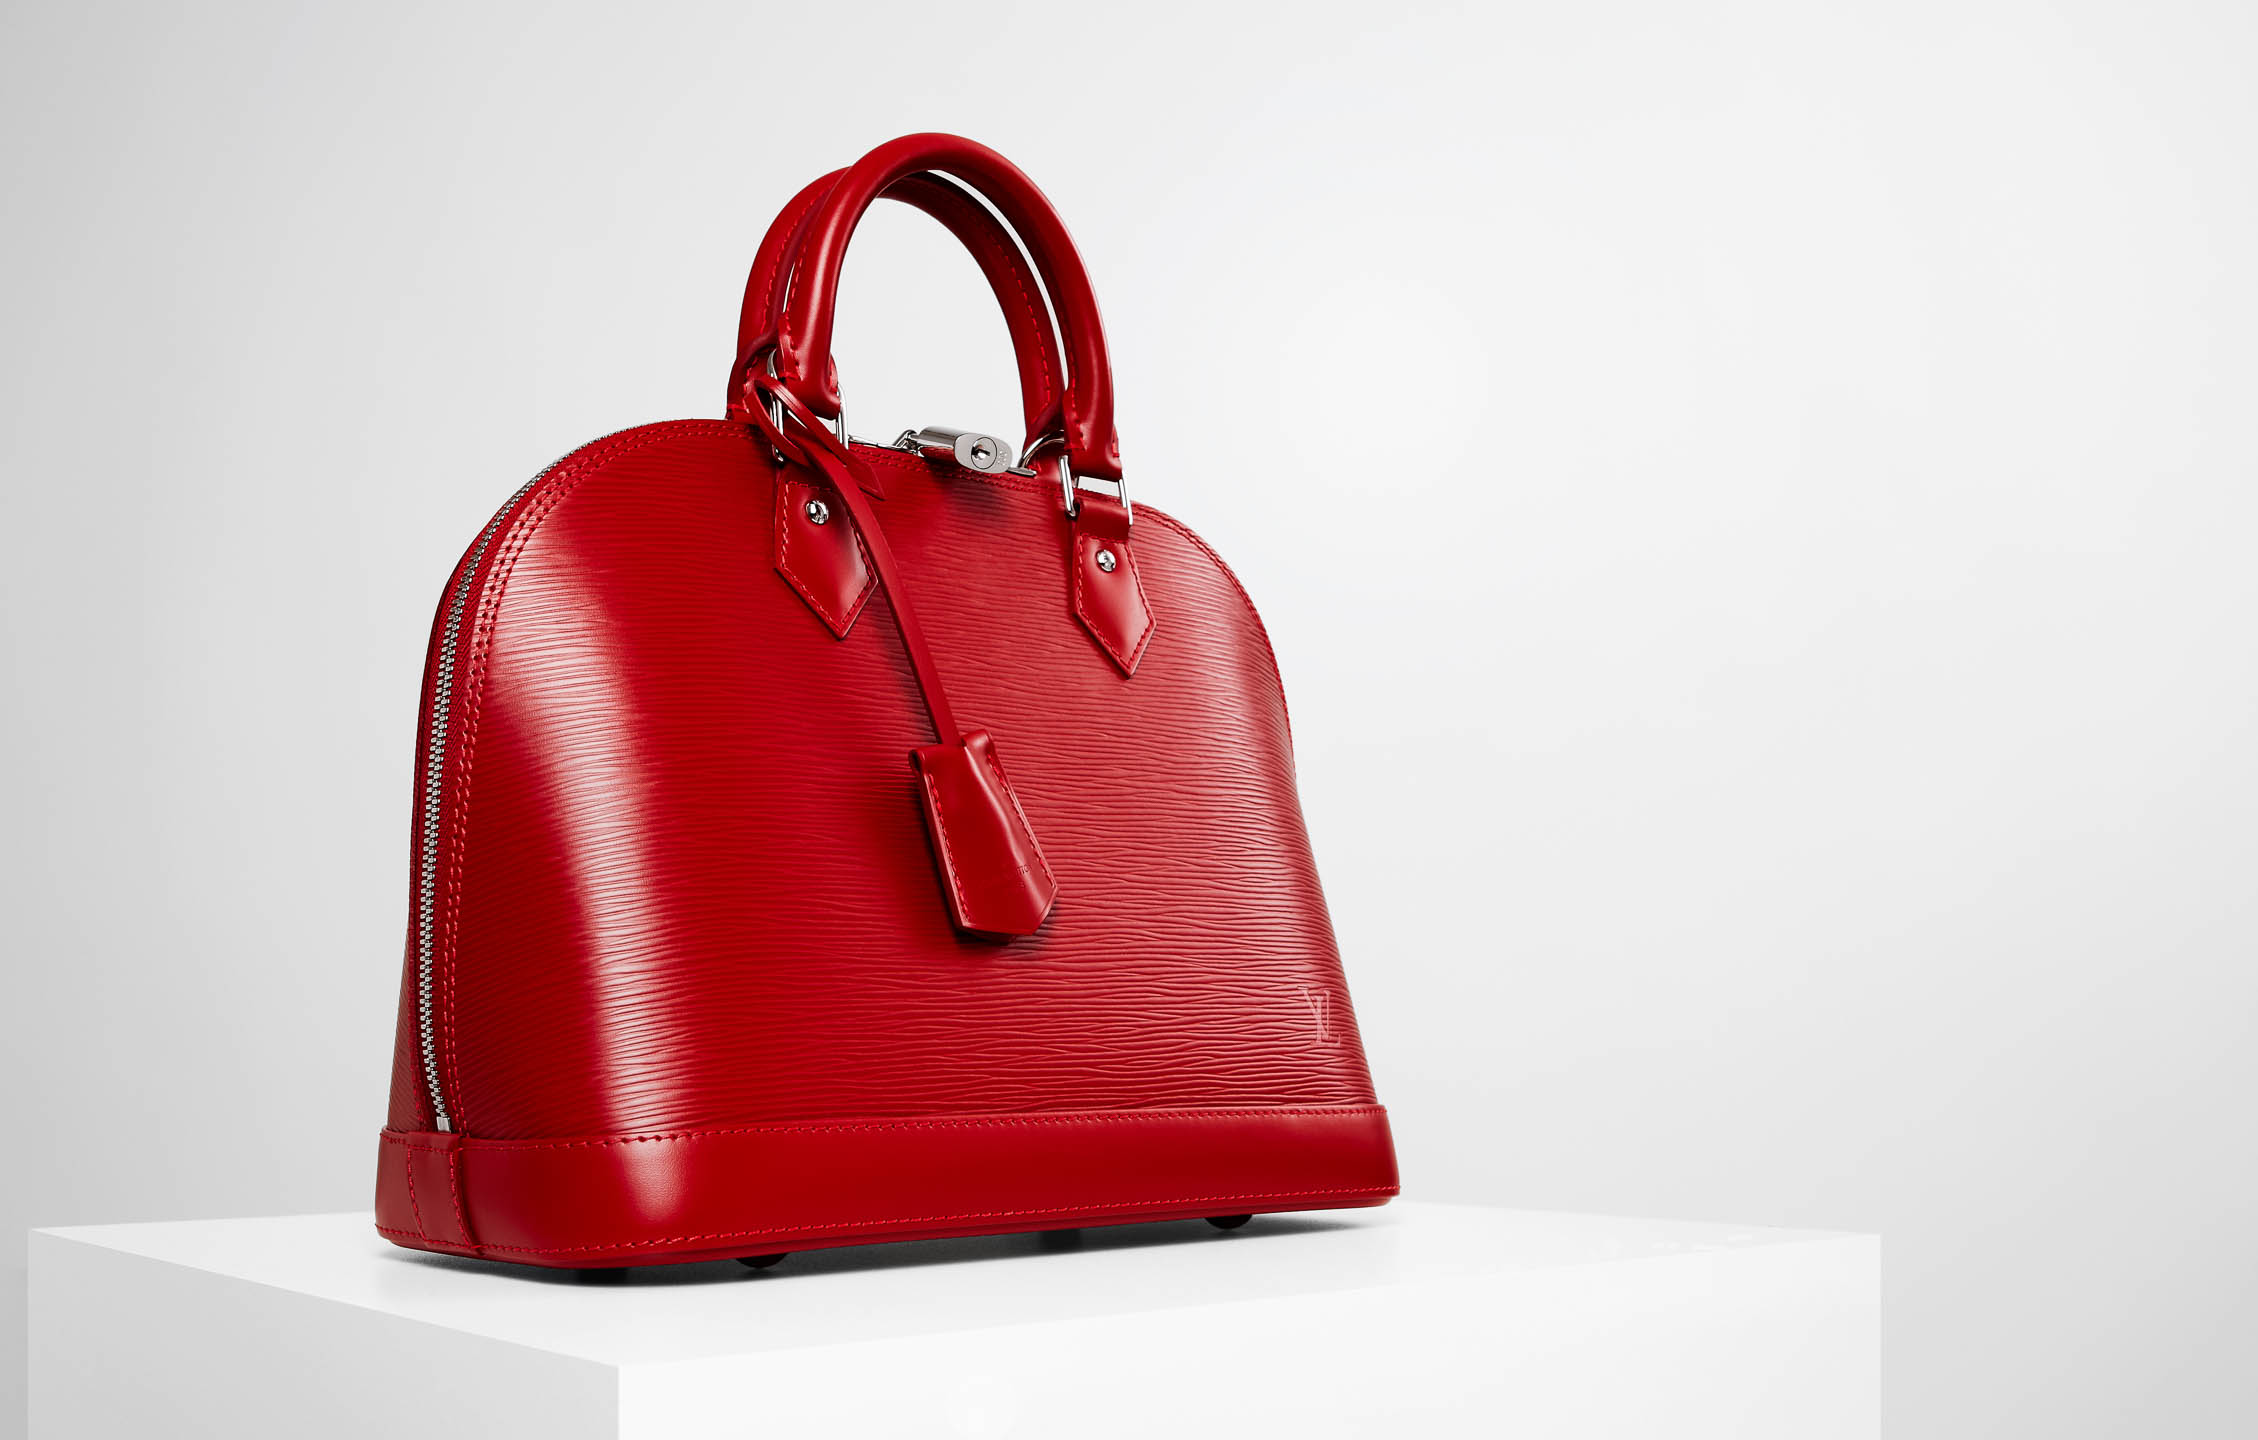 Louis Vuitton red purse by Steve Temple Photography